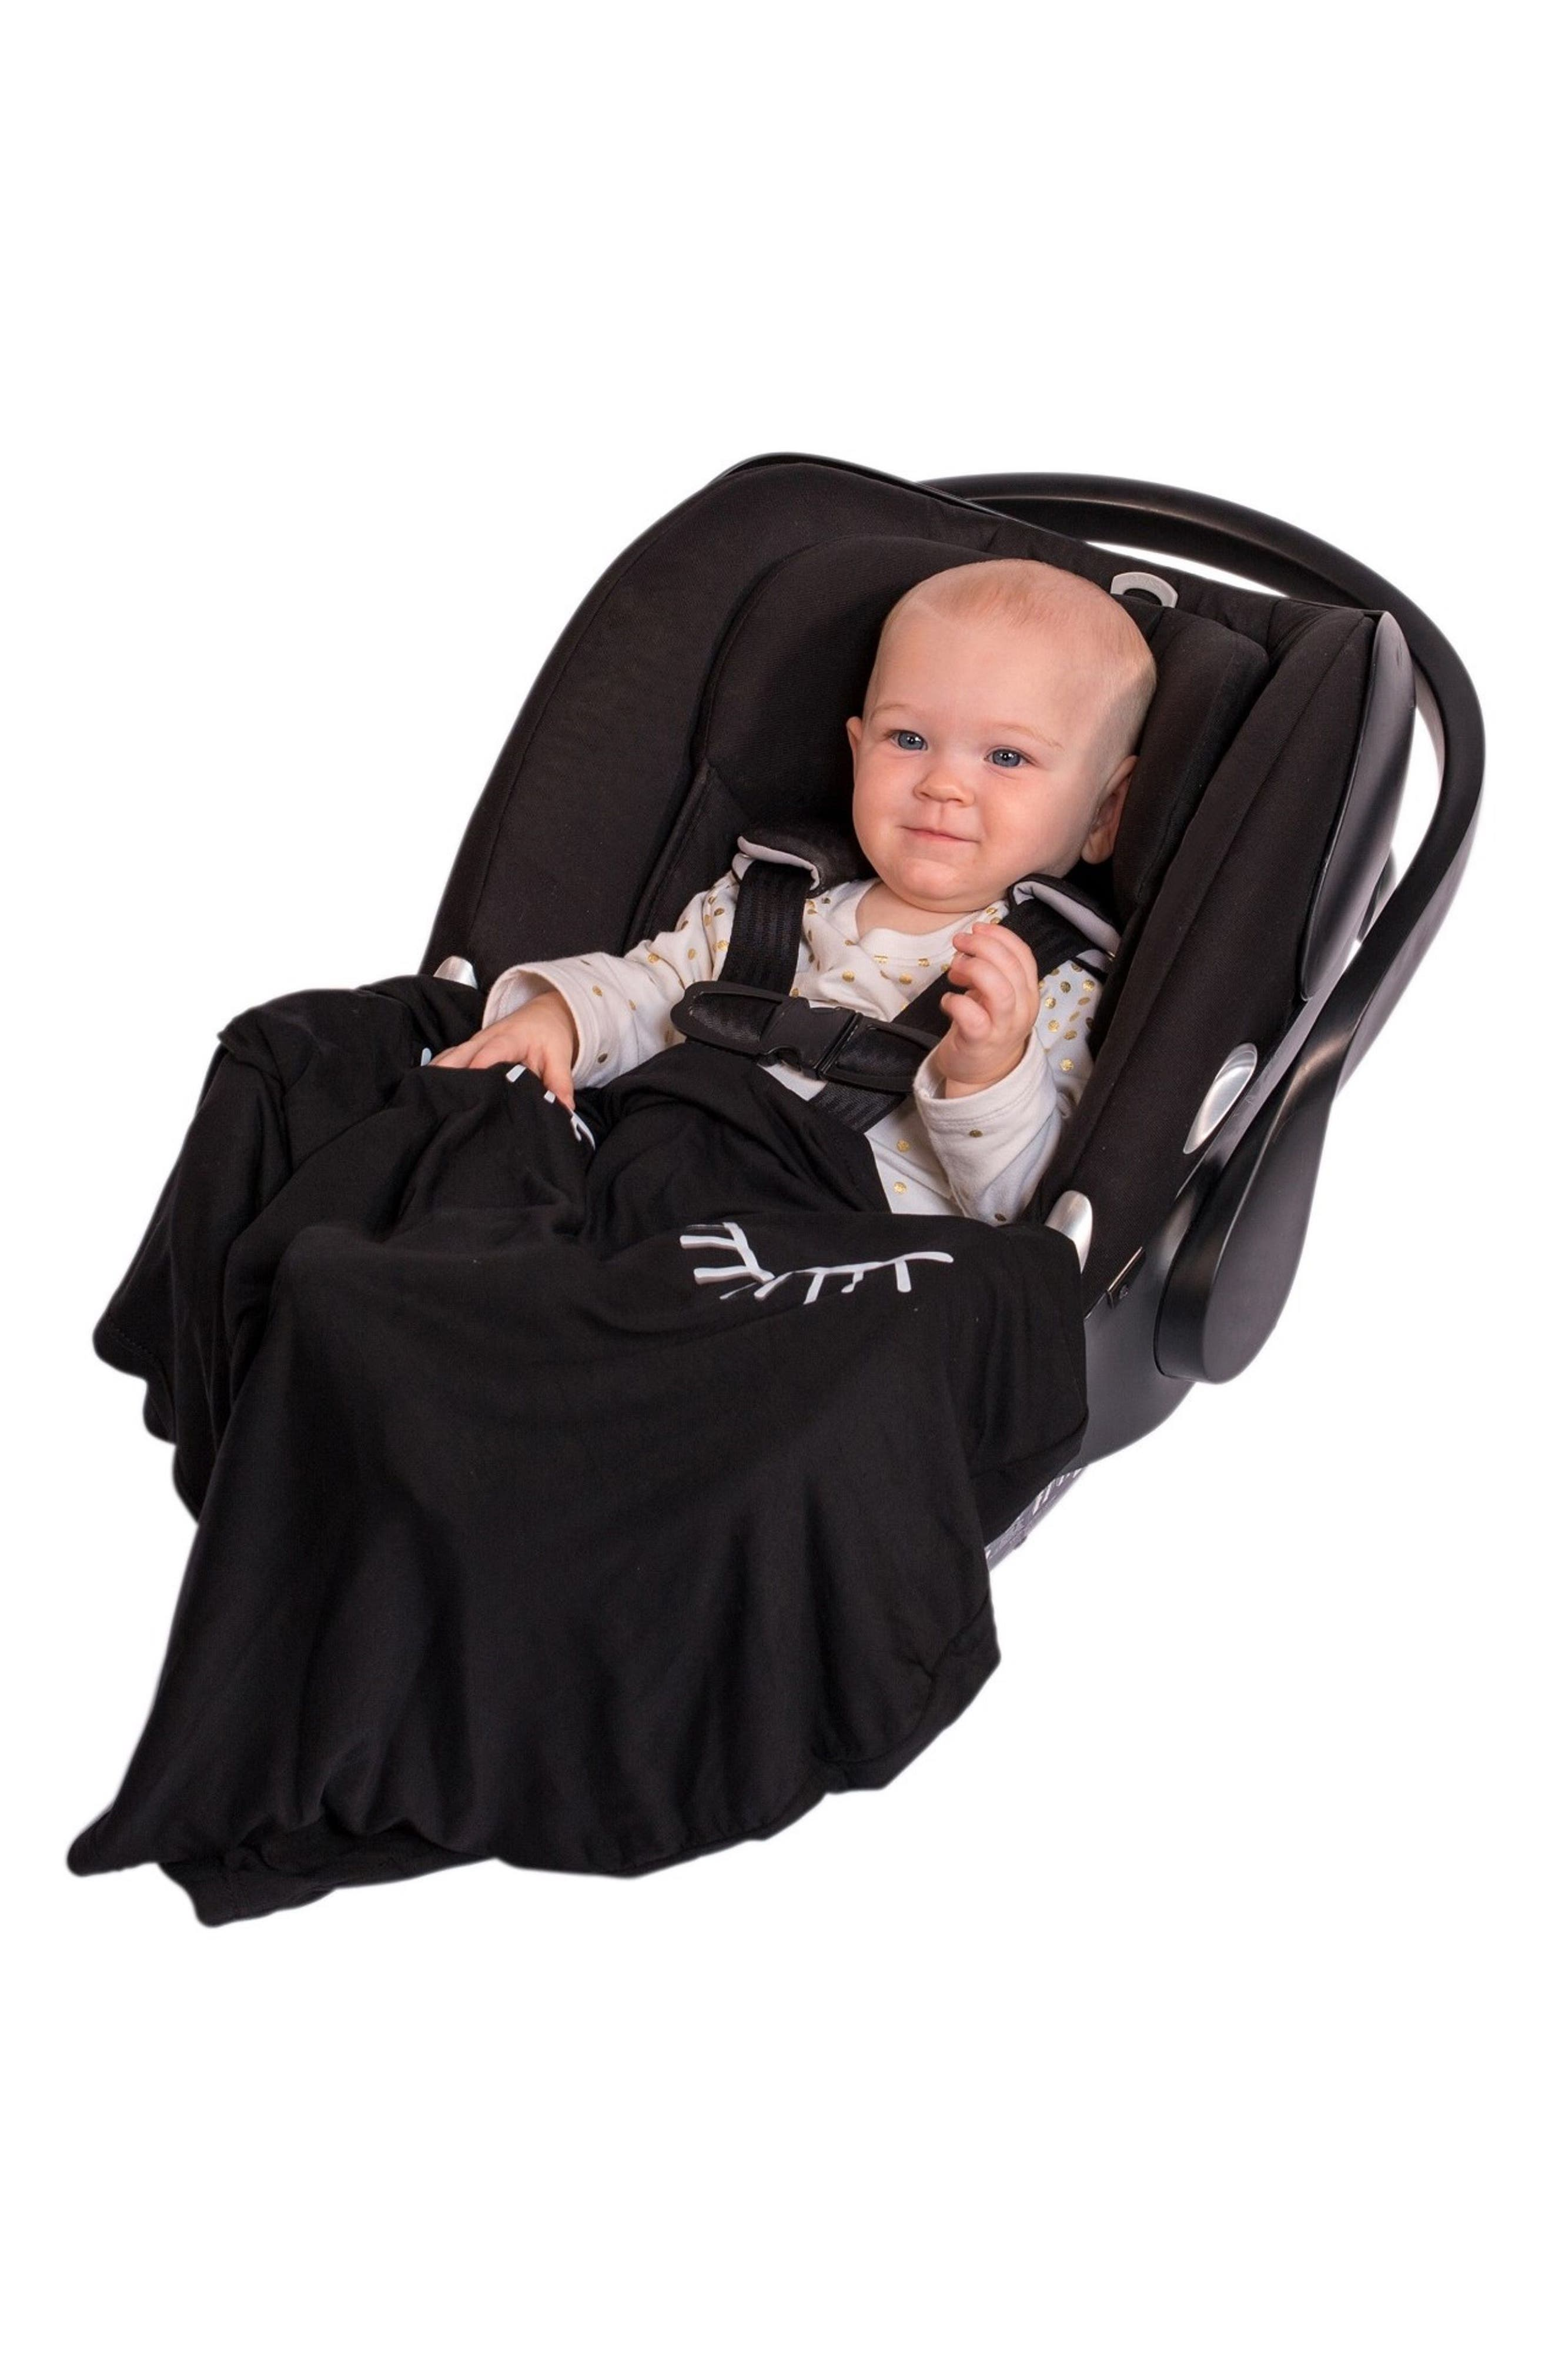 ROSIE POPE, 5-in-1 Car Seat Cover, Alternate thumbnail 6, color, 001